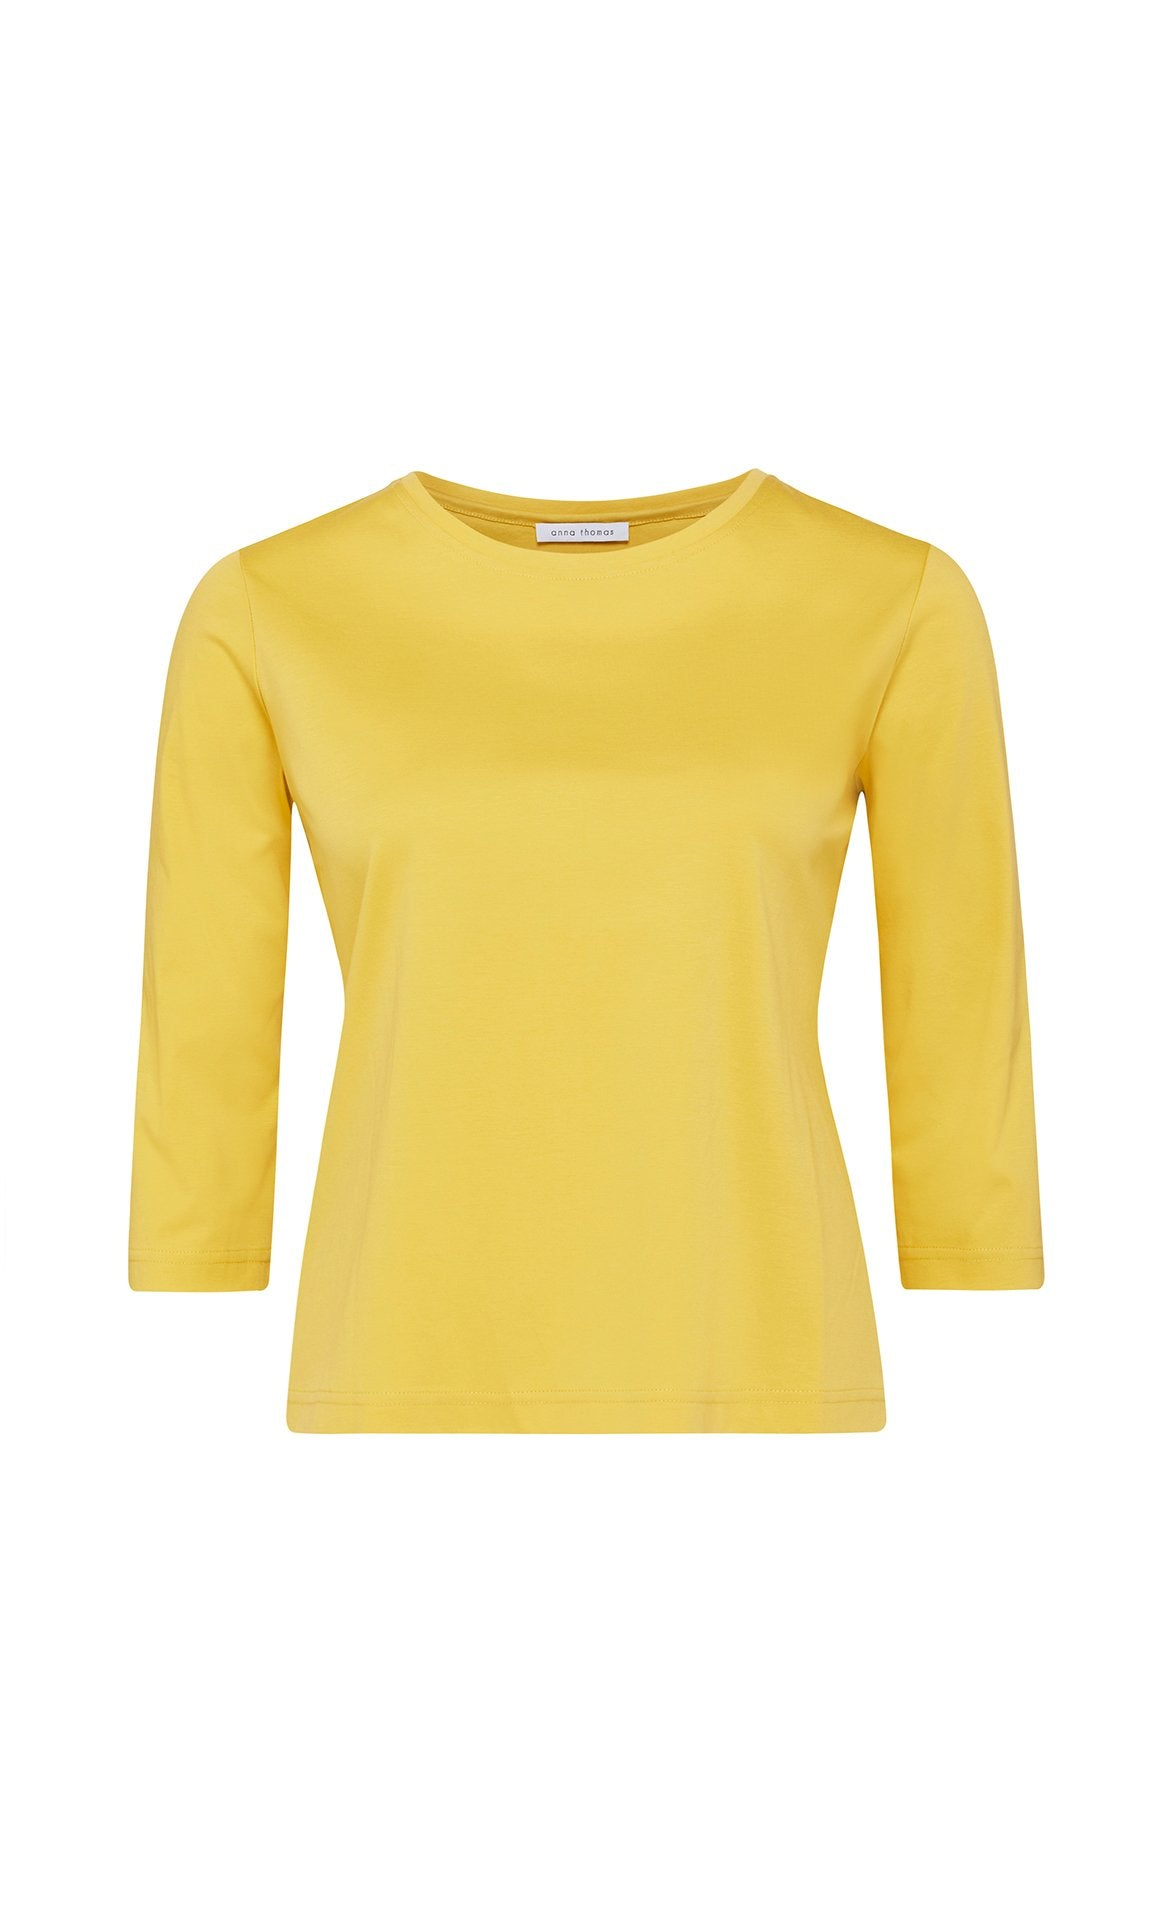 Hana Top - Lemon